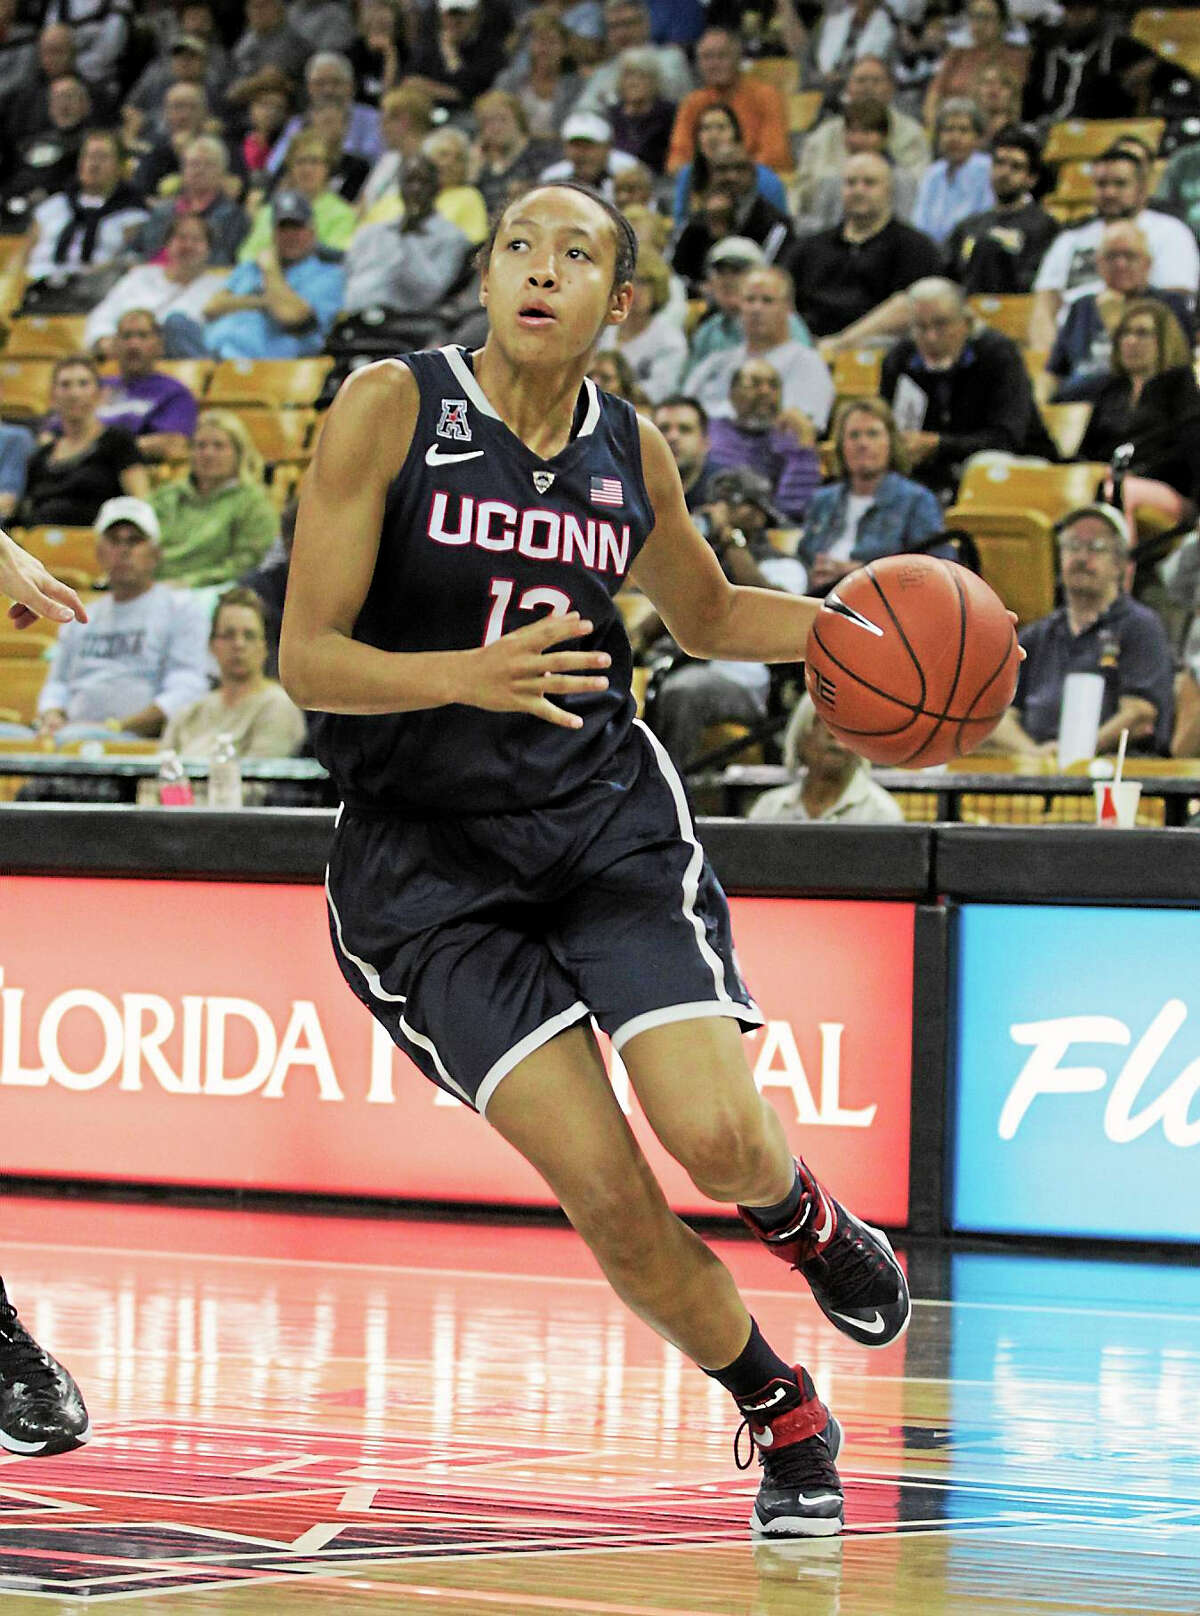 UConn guard Saniya Chong.